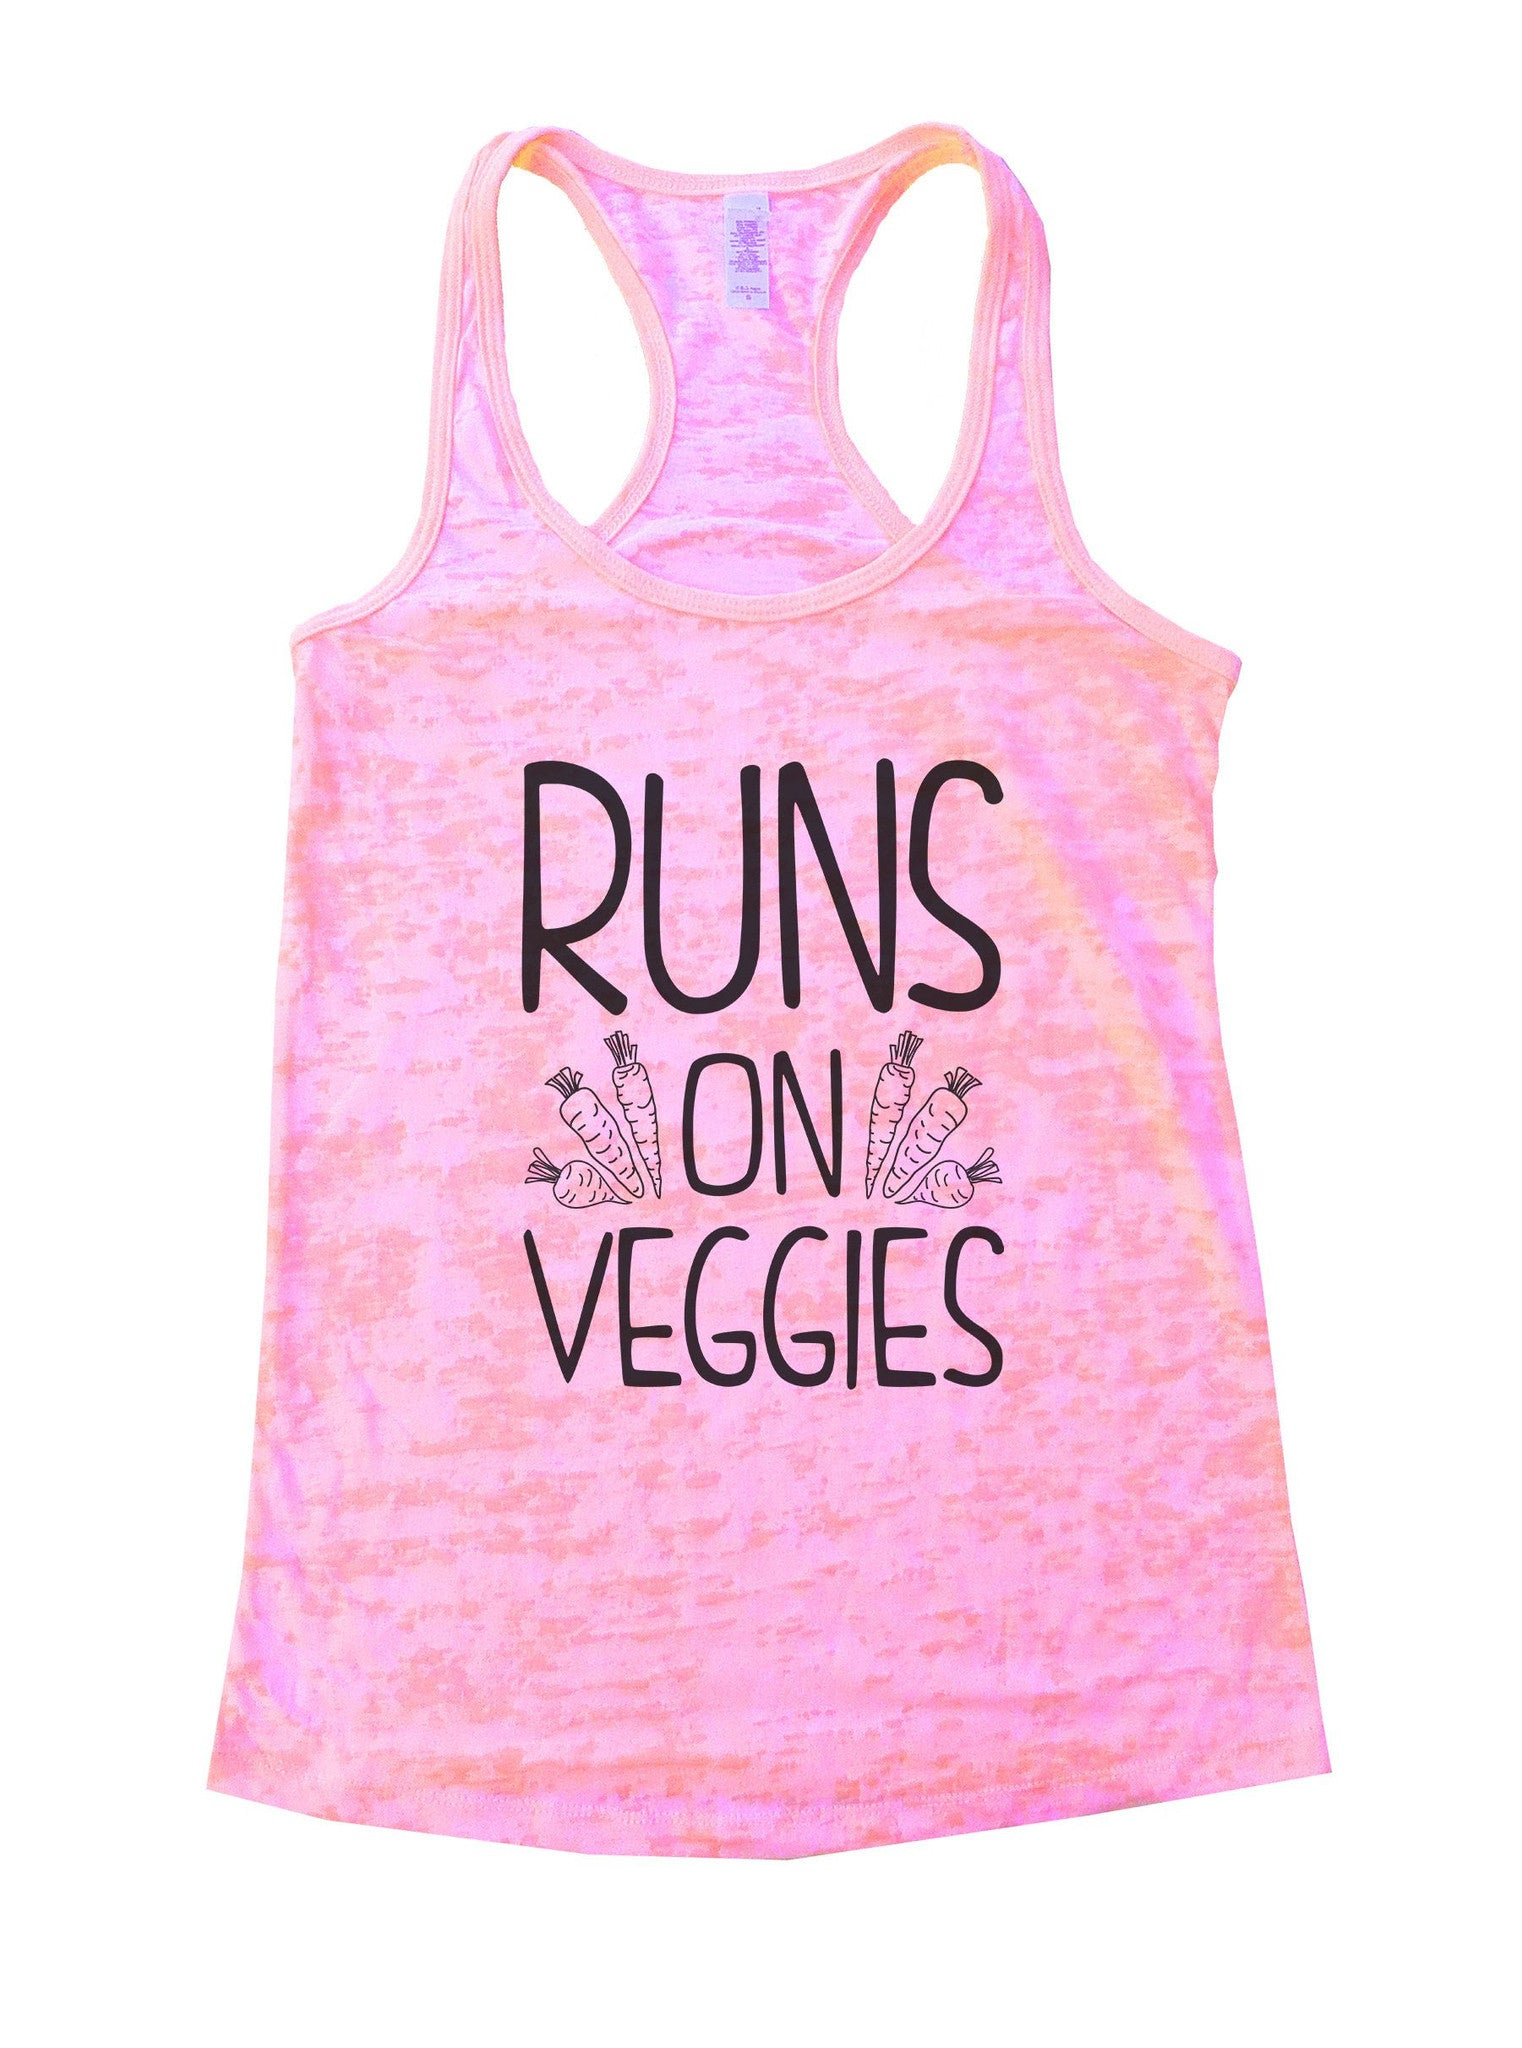 Runs On Veggies Burnout Tank Top By BurnoutTankTops.com - 1074 - Funny Shirts Tank Tops Burnouts and Triblends  - 2